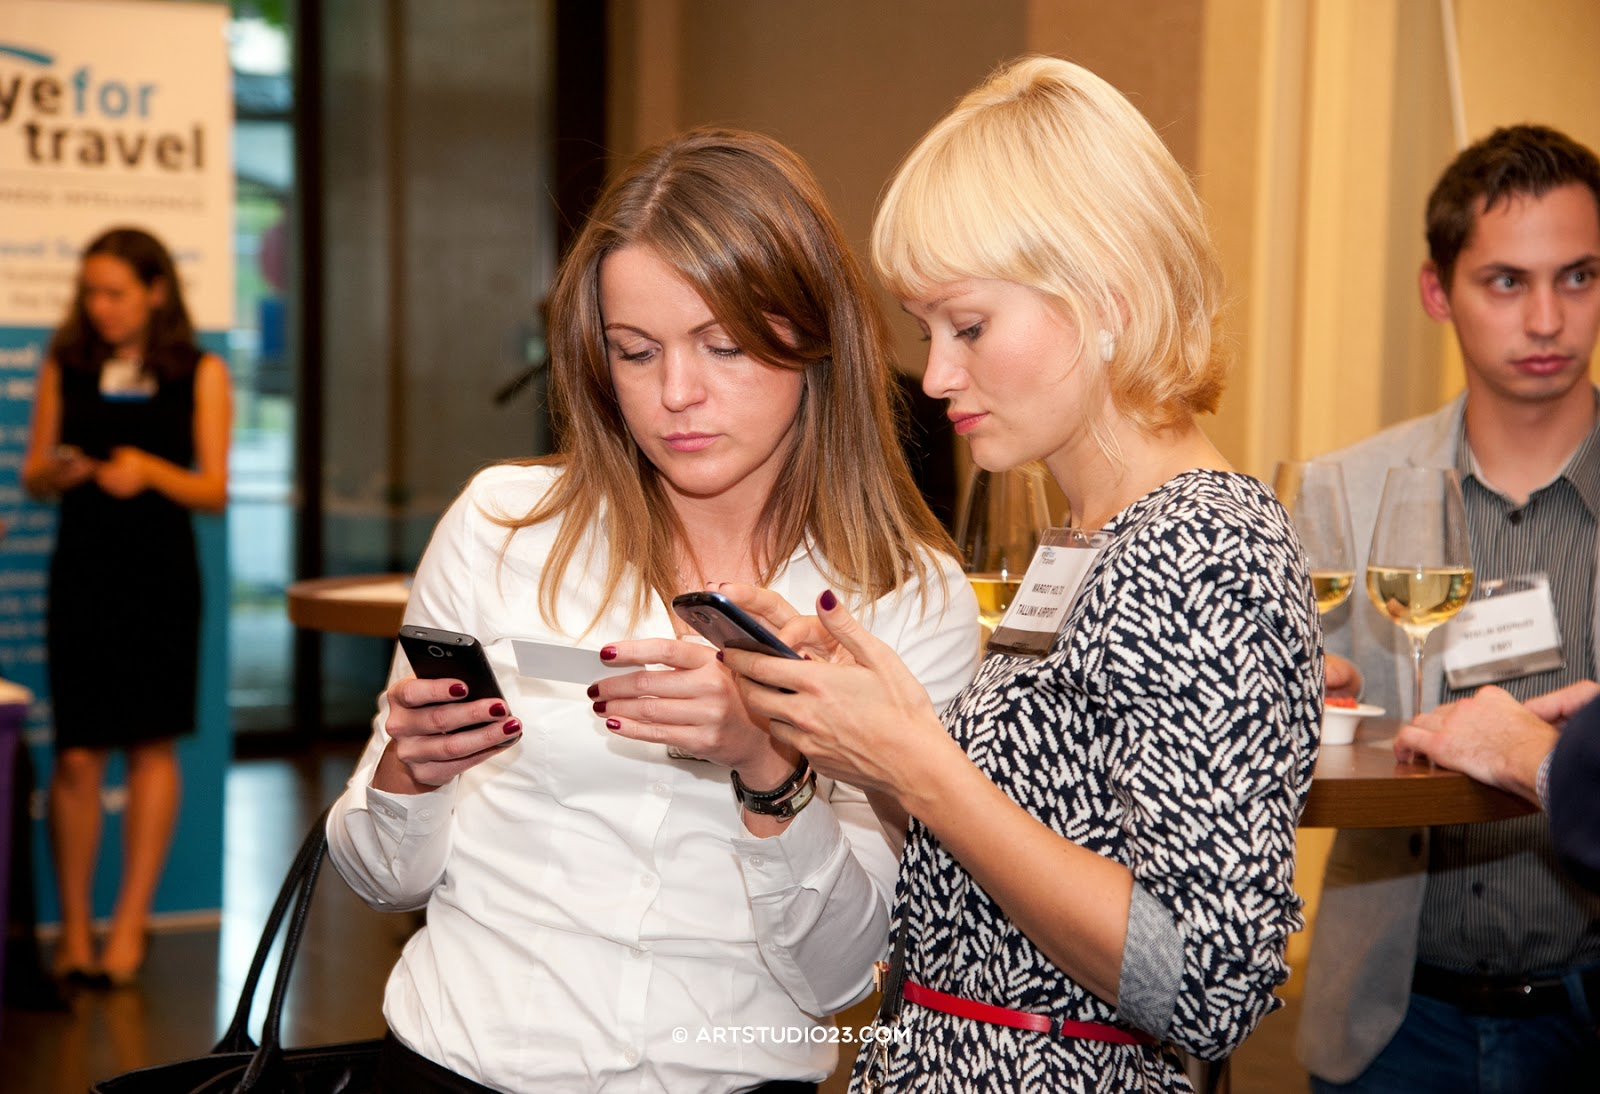 Online Marketing, Mobile & Social Media in Travel Europe 2014